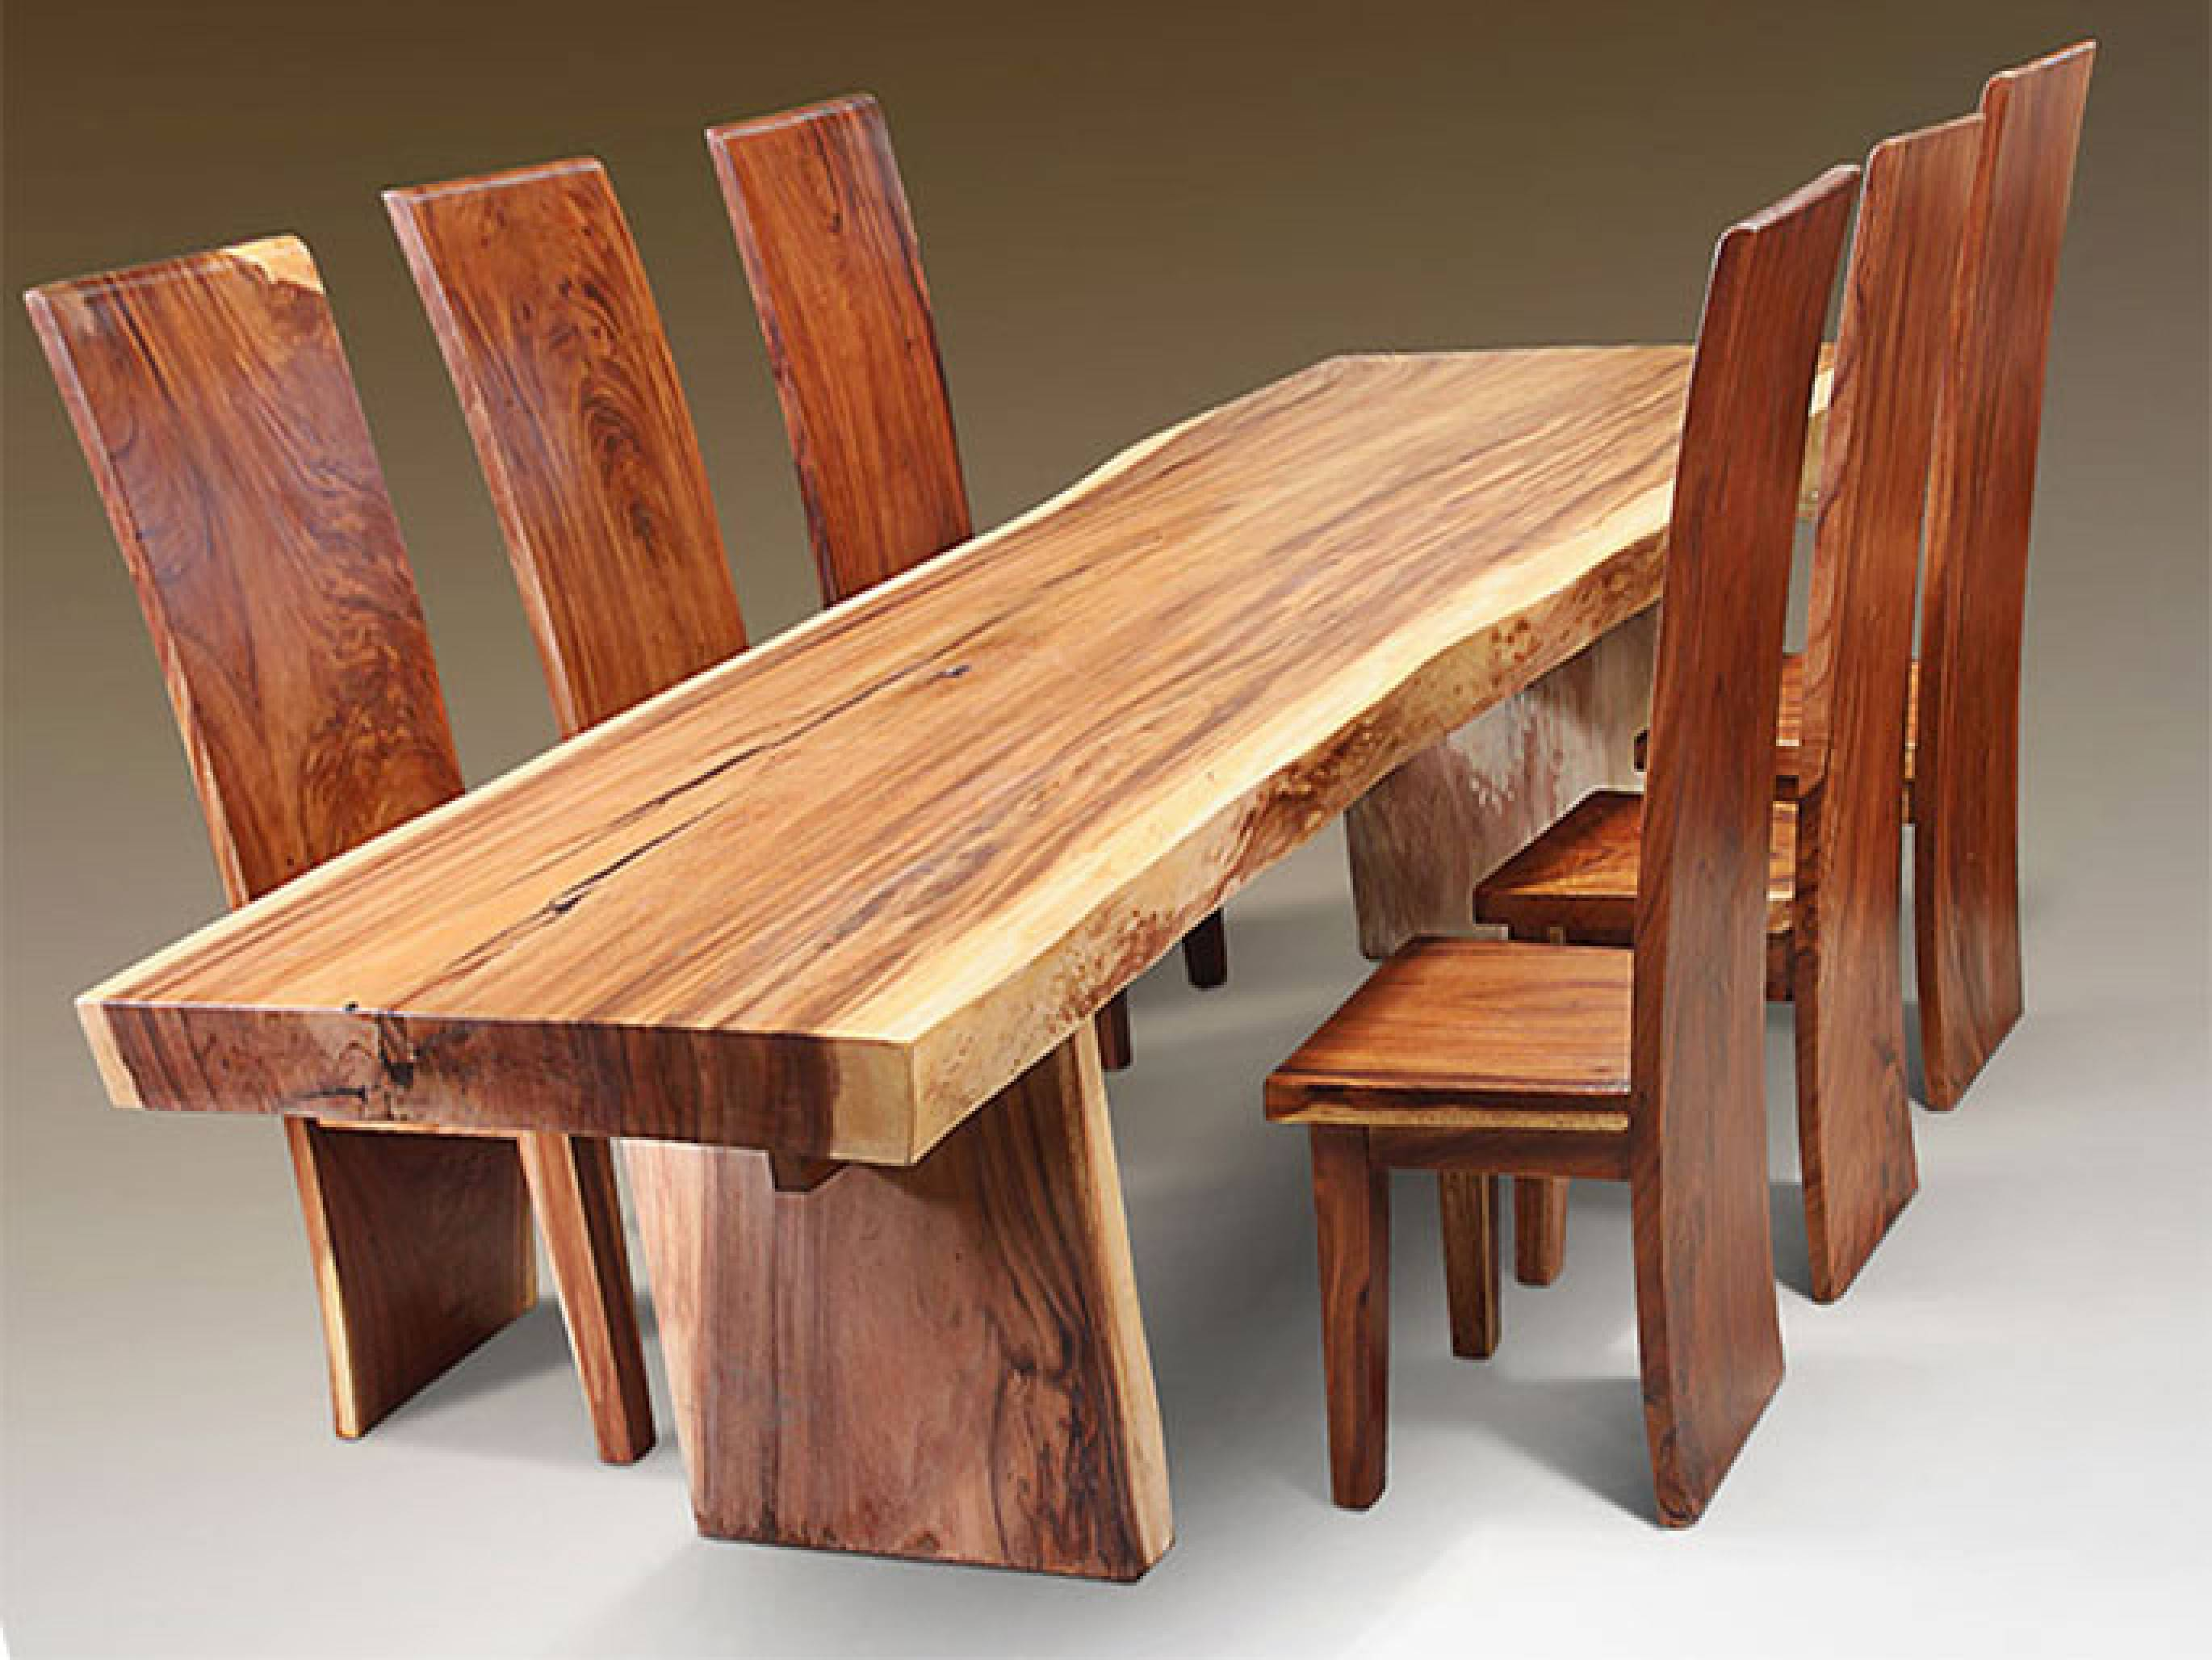 IPE Wood Furniture